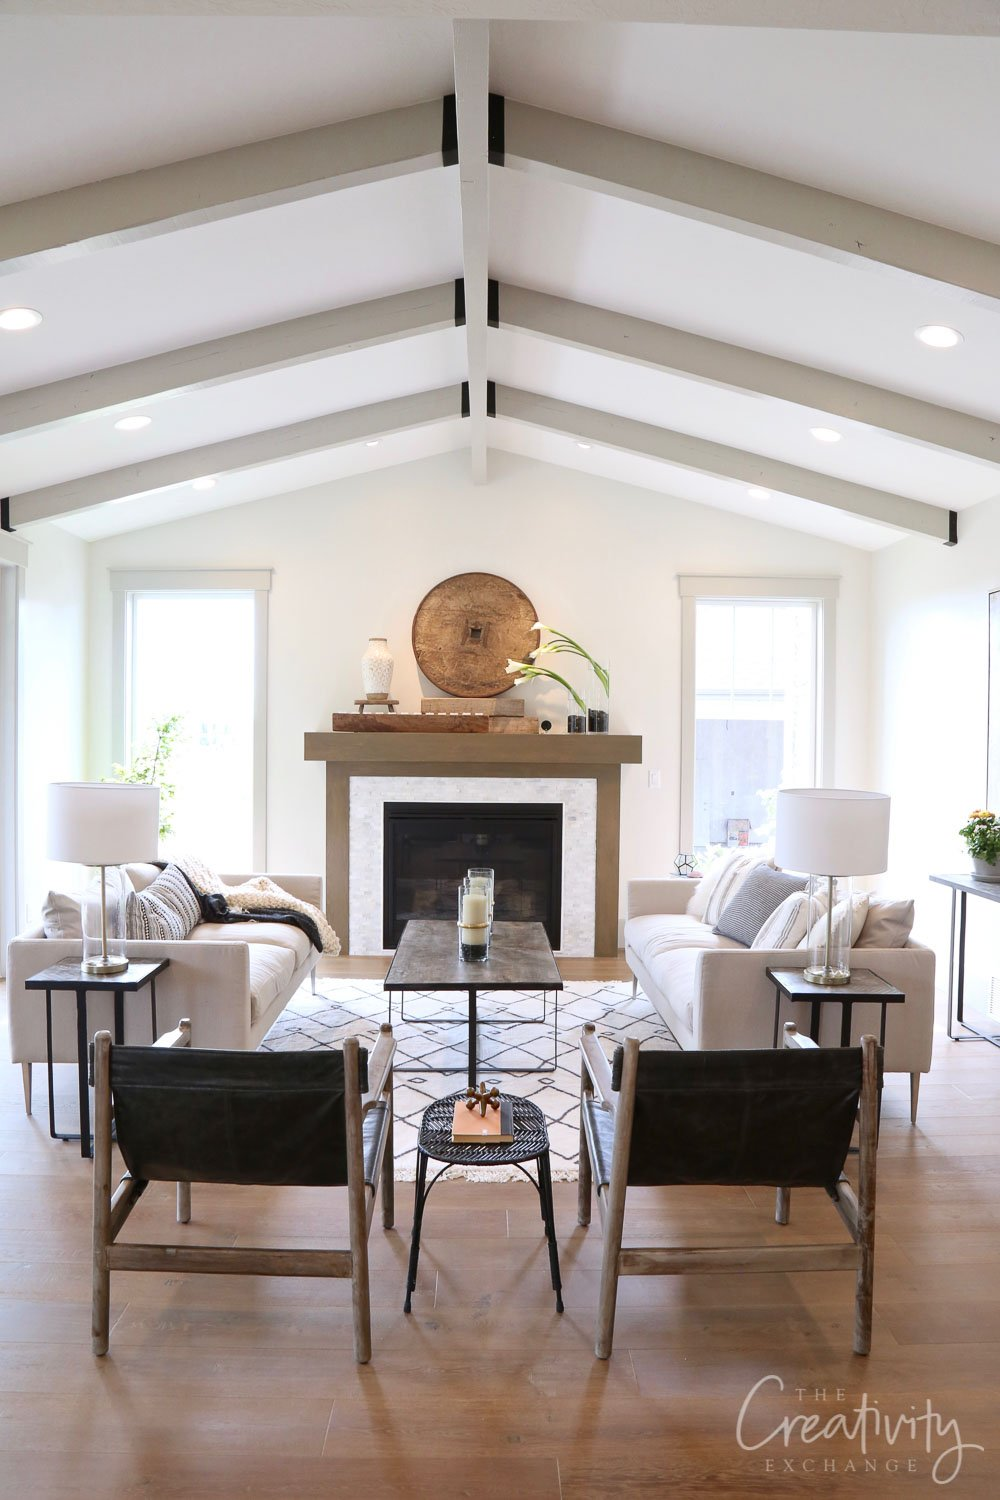 Open living room with painted ceiling beams